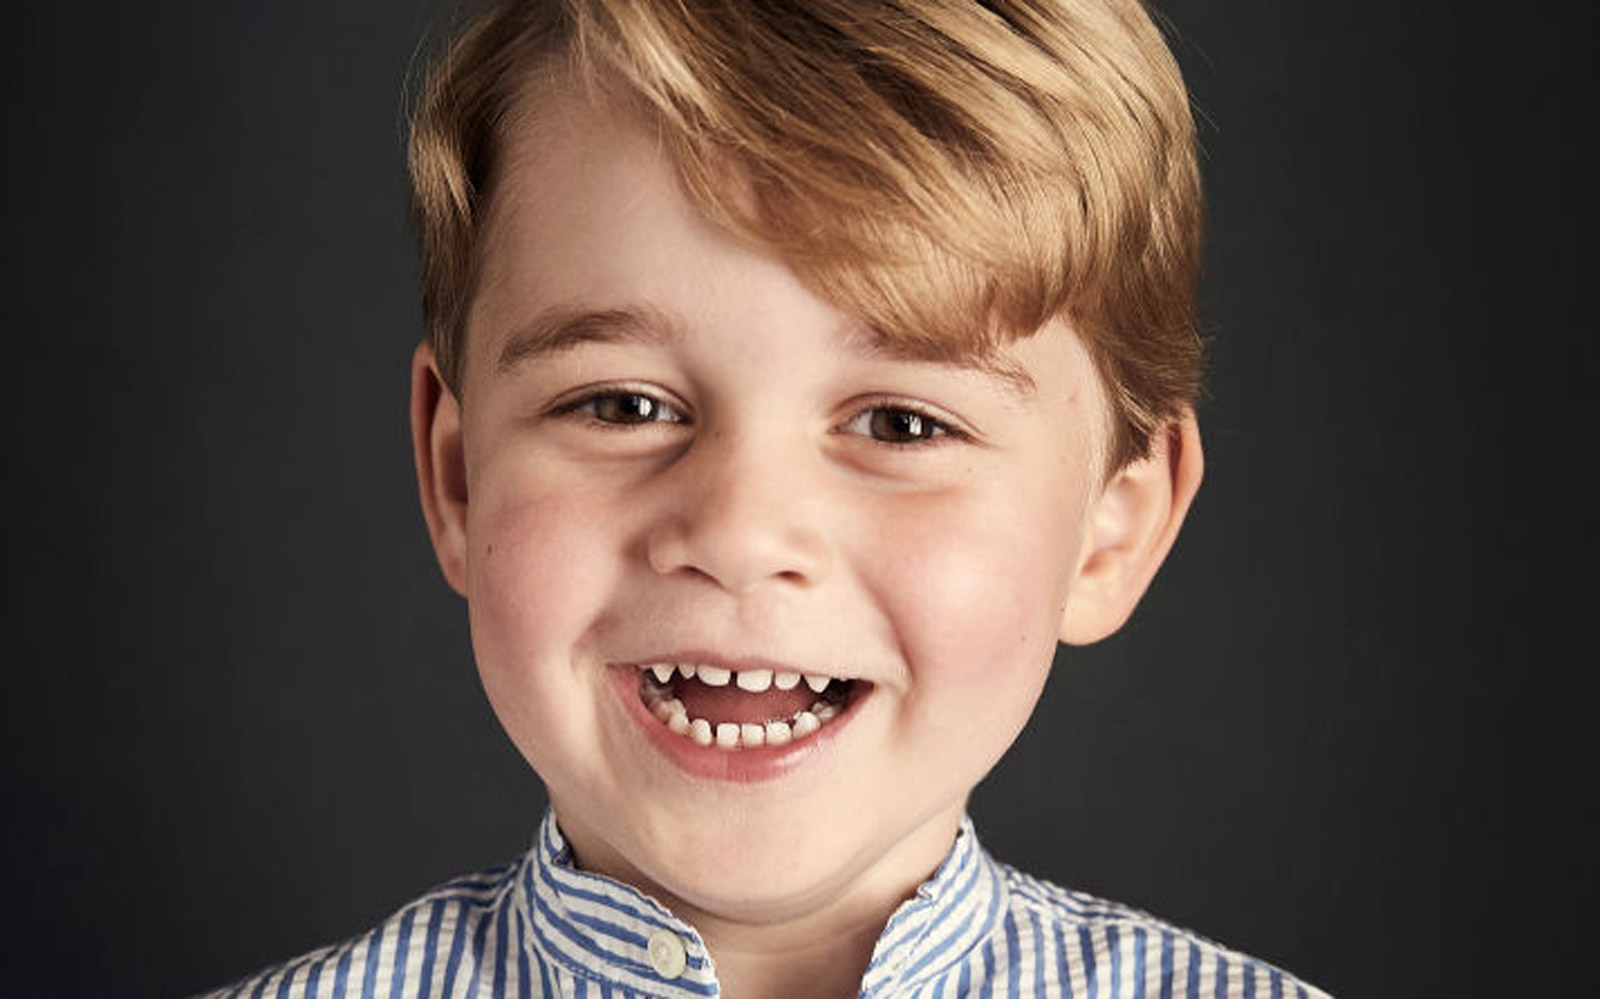 Prince George's New Birthday Portrait Is Here and His Toothy Smile Is Pure Joy